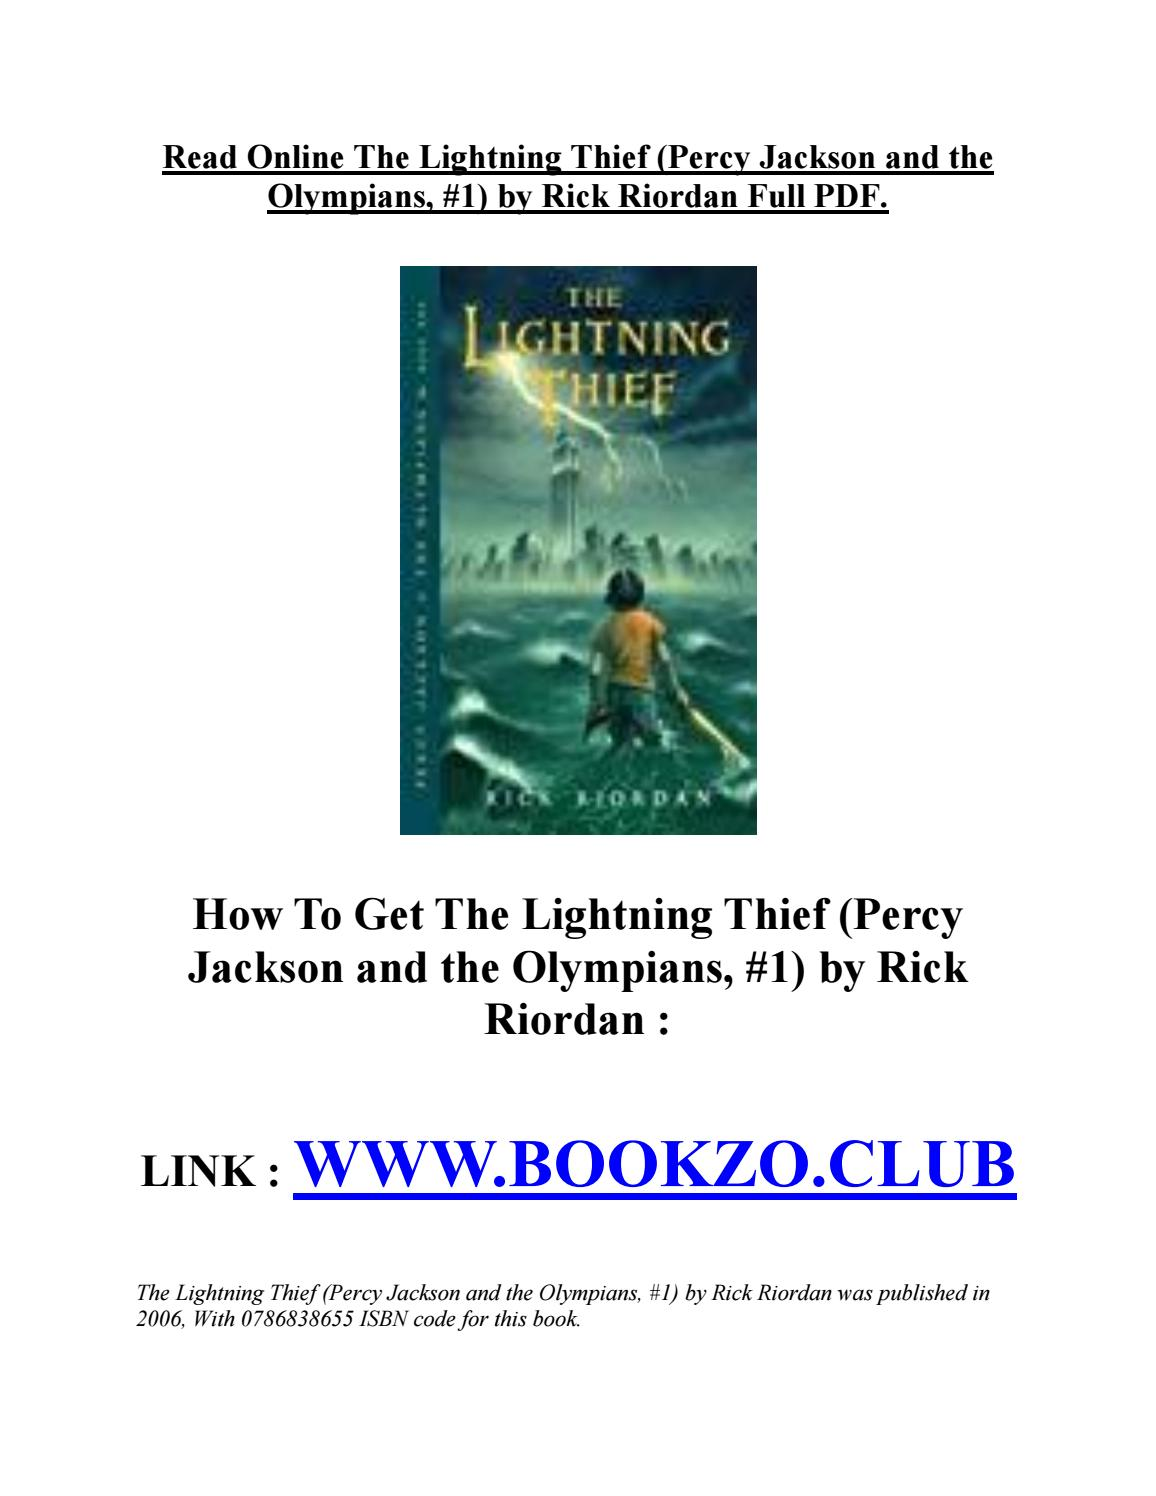 Percy Jackson And The Lightning Thief Pdf Download